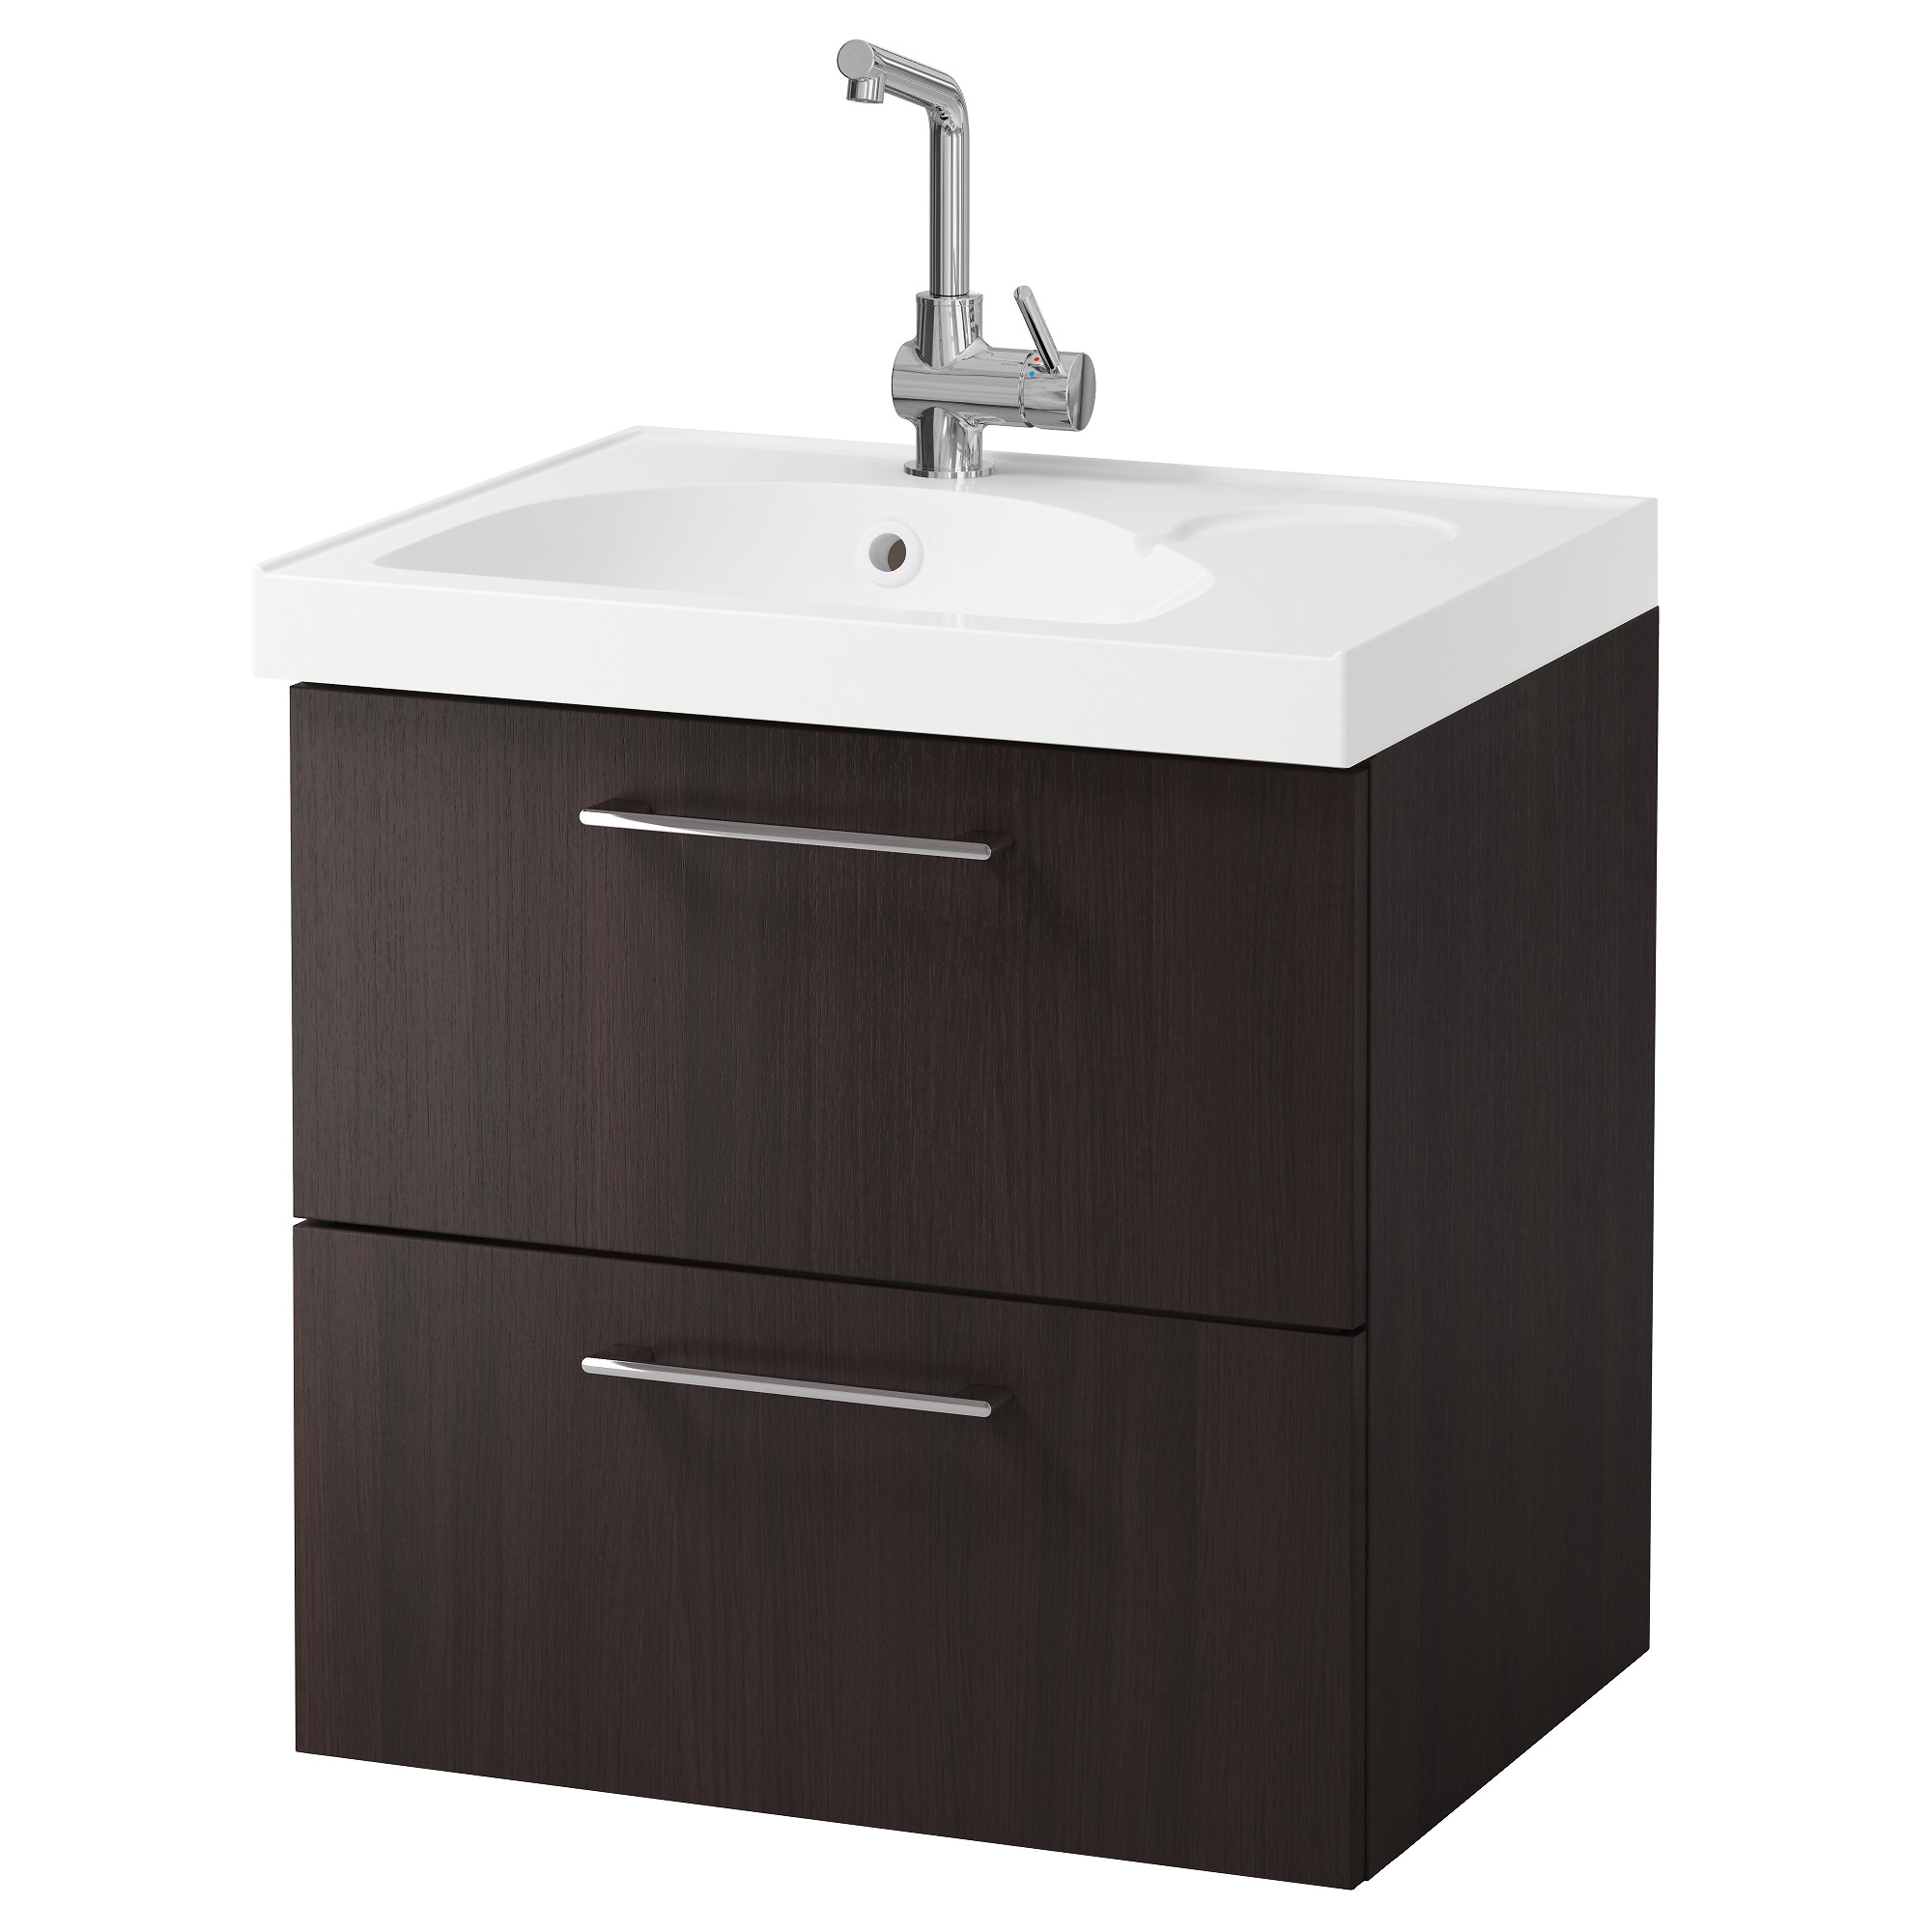 Bathroom sink cabinets white - Godmorgon Edeboviken Sink Cabinet With 2 Drawers Black Brown Width 24 3